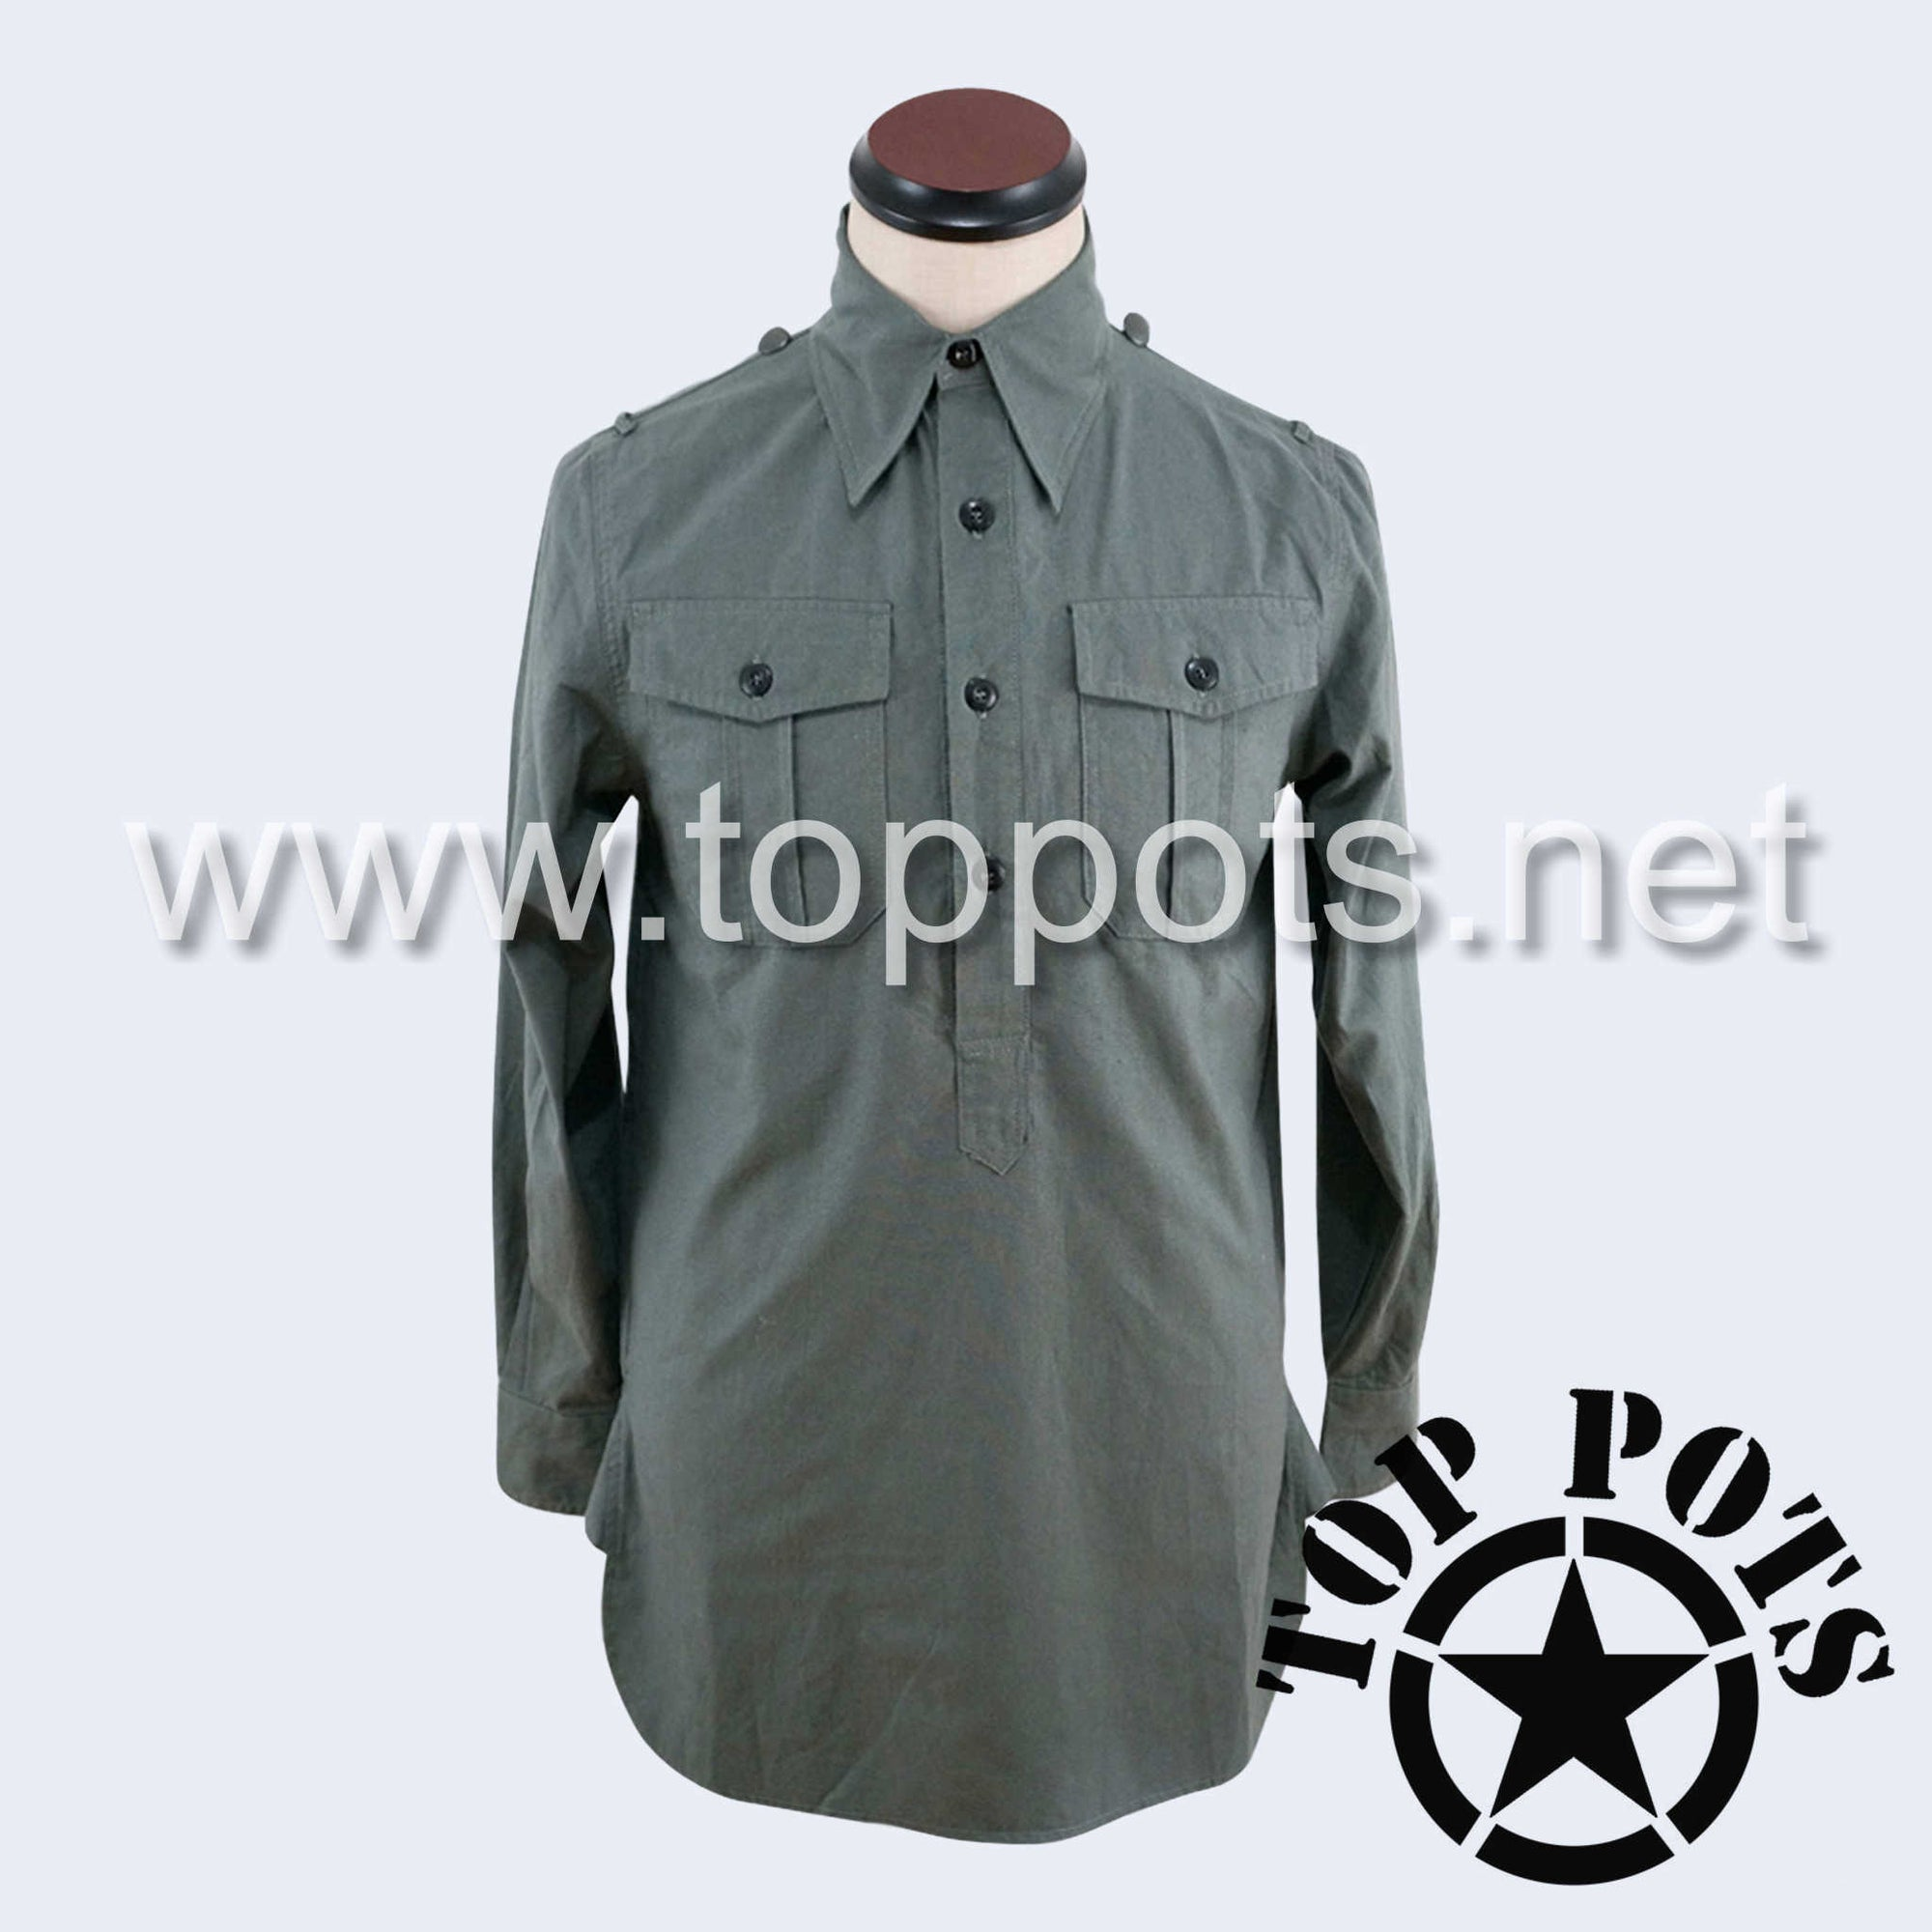 WWII German Army Waffen SS Uniform Long Sleeve Service Shirt - Grey